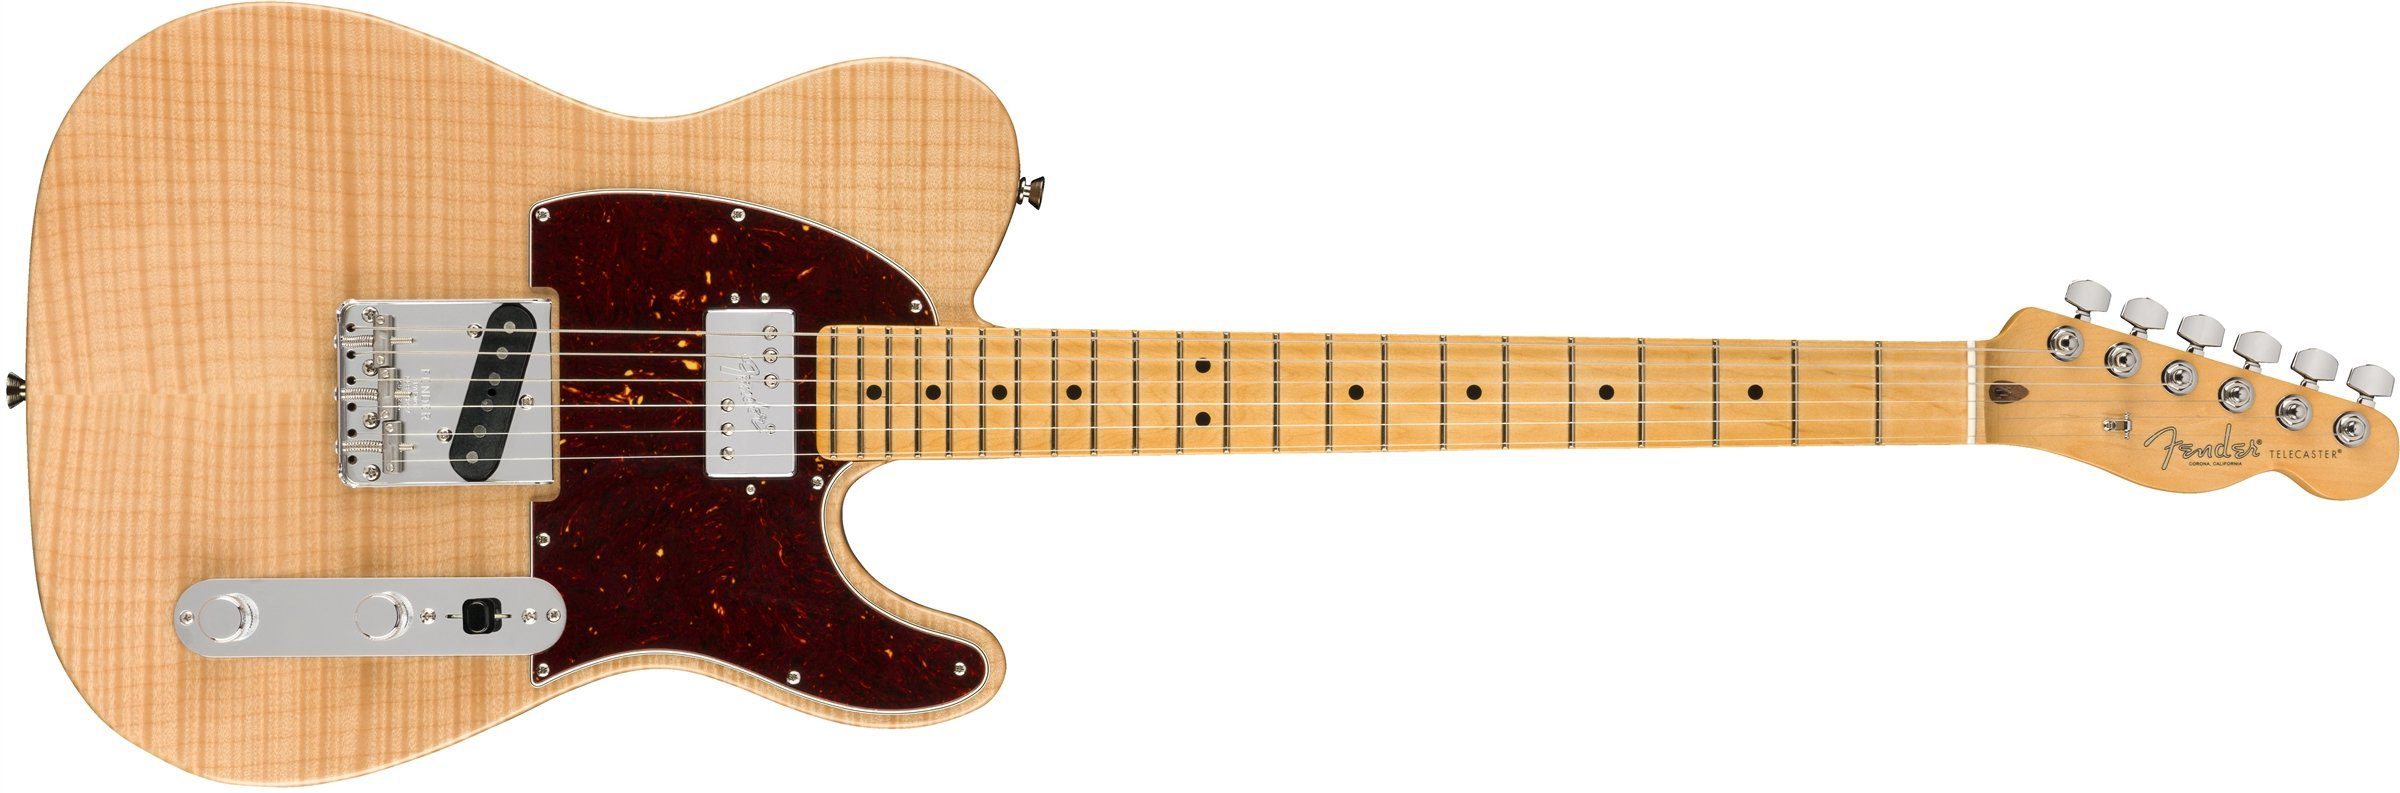 Fender-Rarities-Series-Chambered-Flame-Top-Telecaster